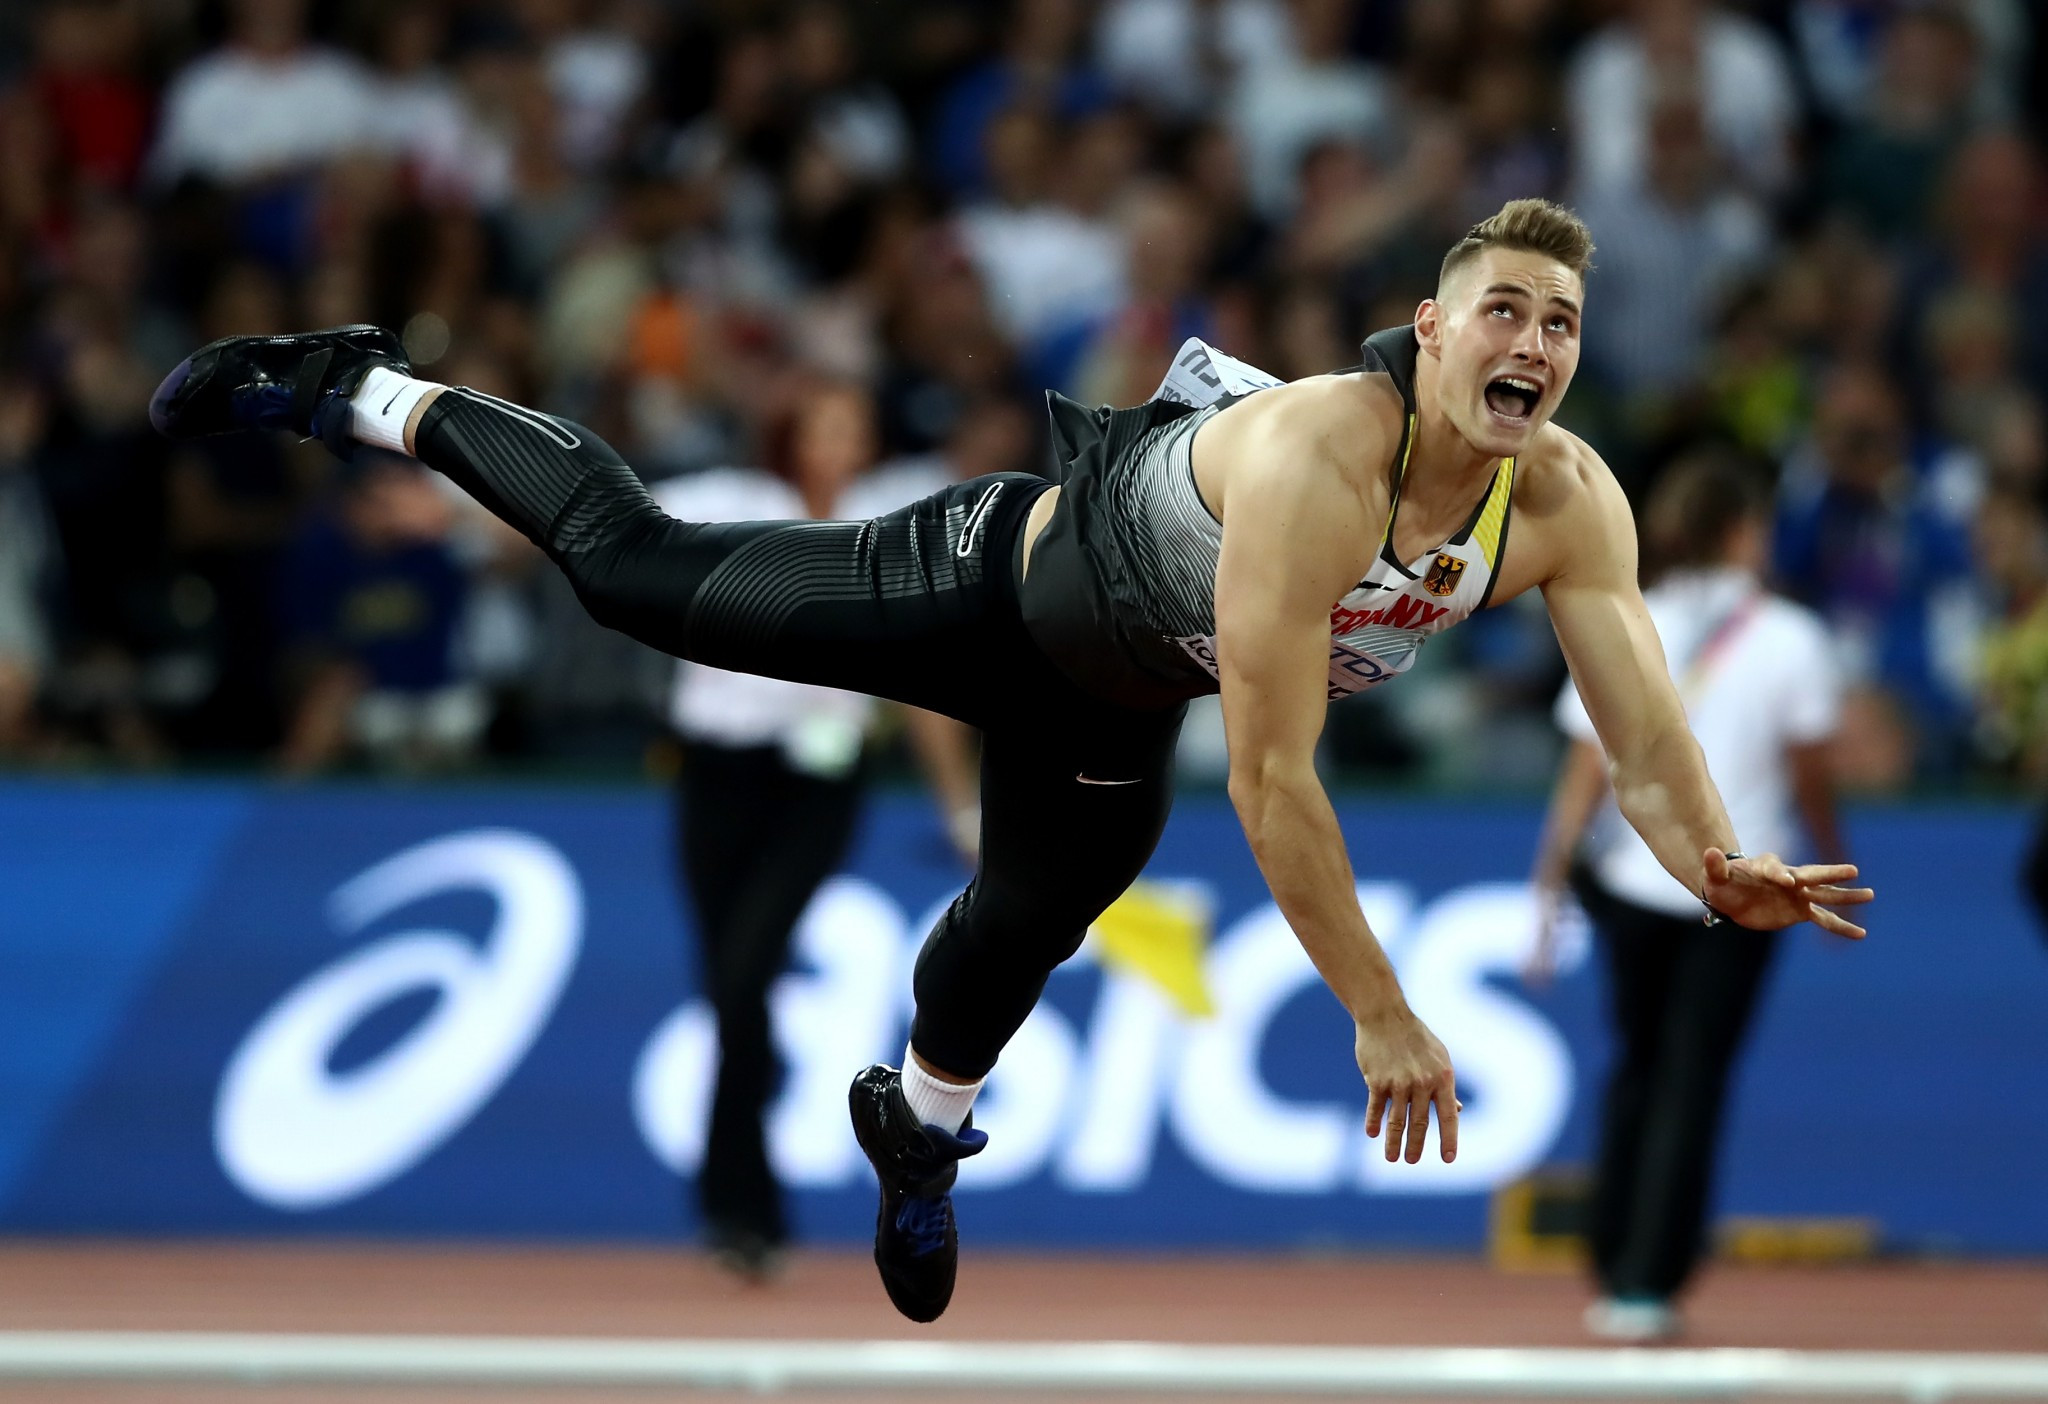 Germany's Johannes Vetter topped the podium in the men's javelin competition